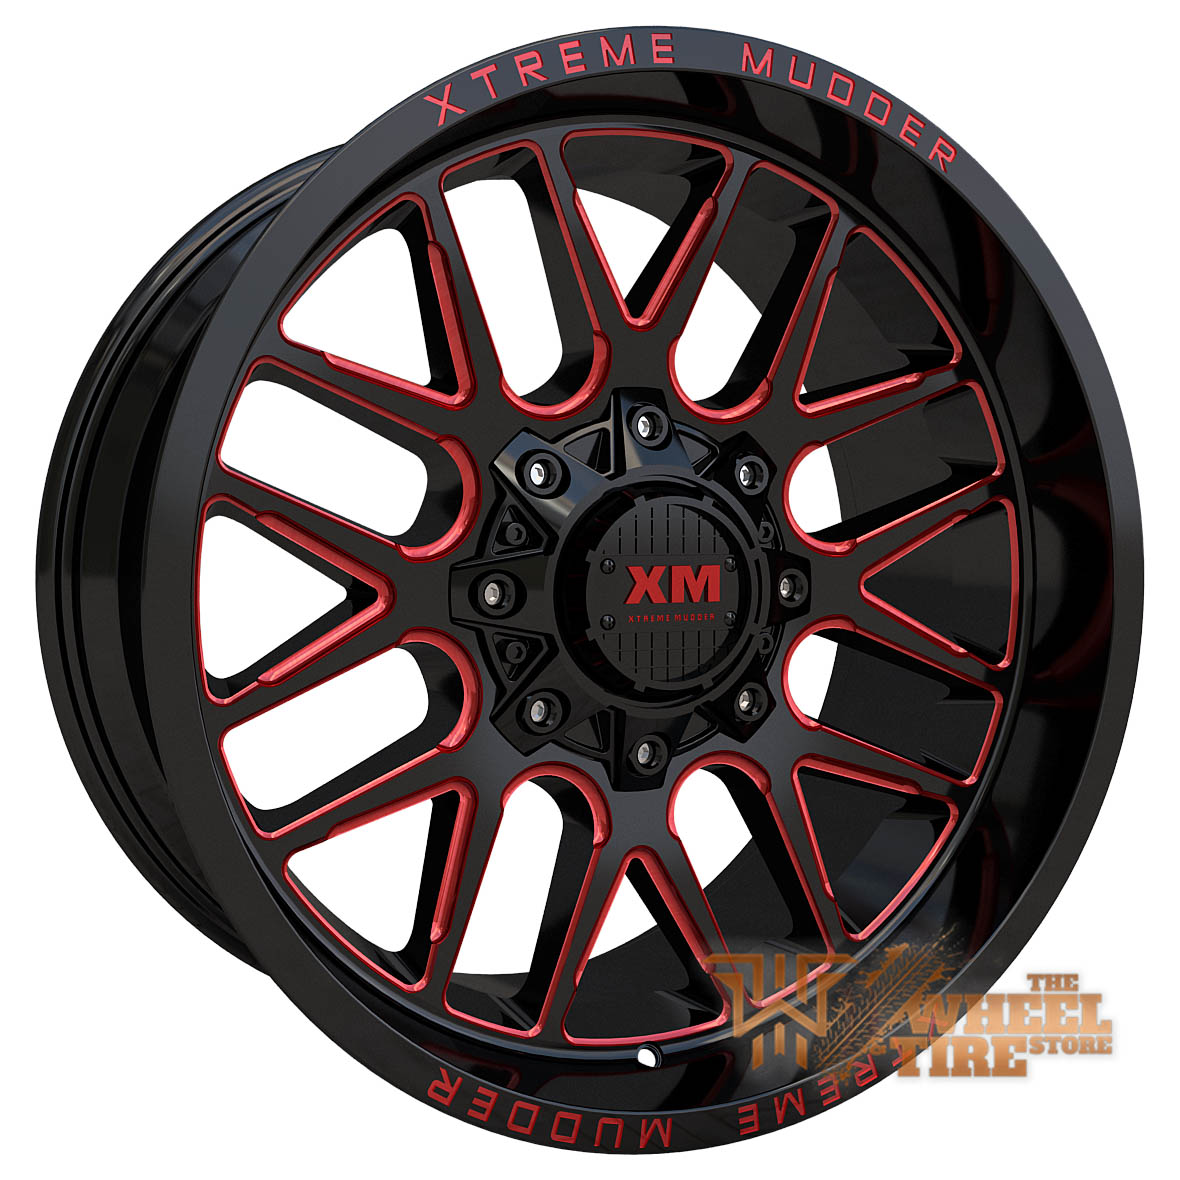 XTREME MUDDER XM-338 Wheel in Gloss Black Red Milled (Set of 4)